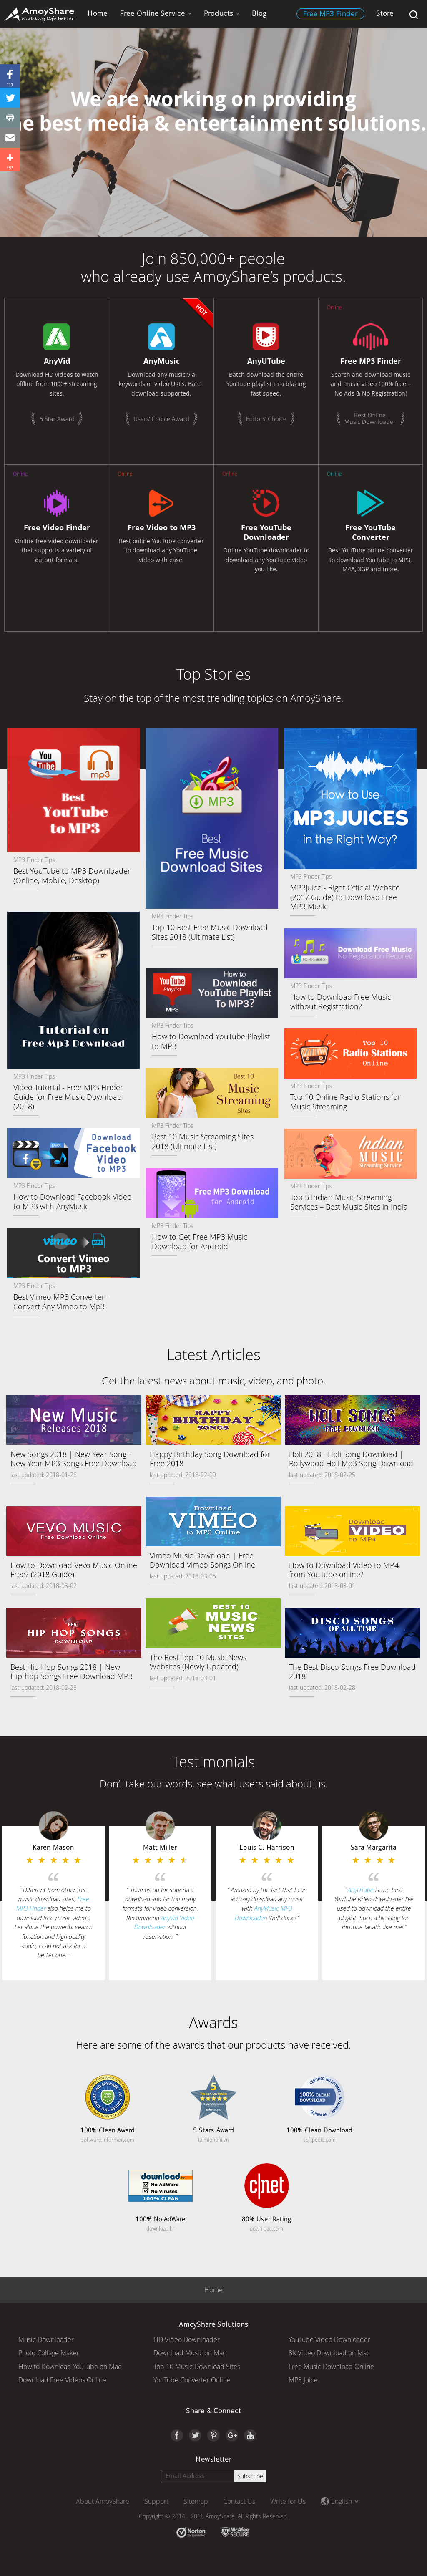 Owler Reports - Press Release: AmoyShare : AnyMusic - The